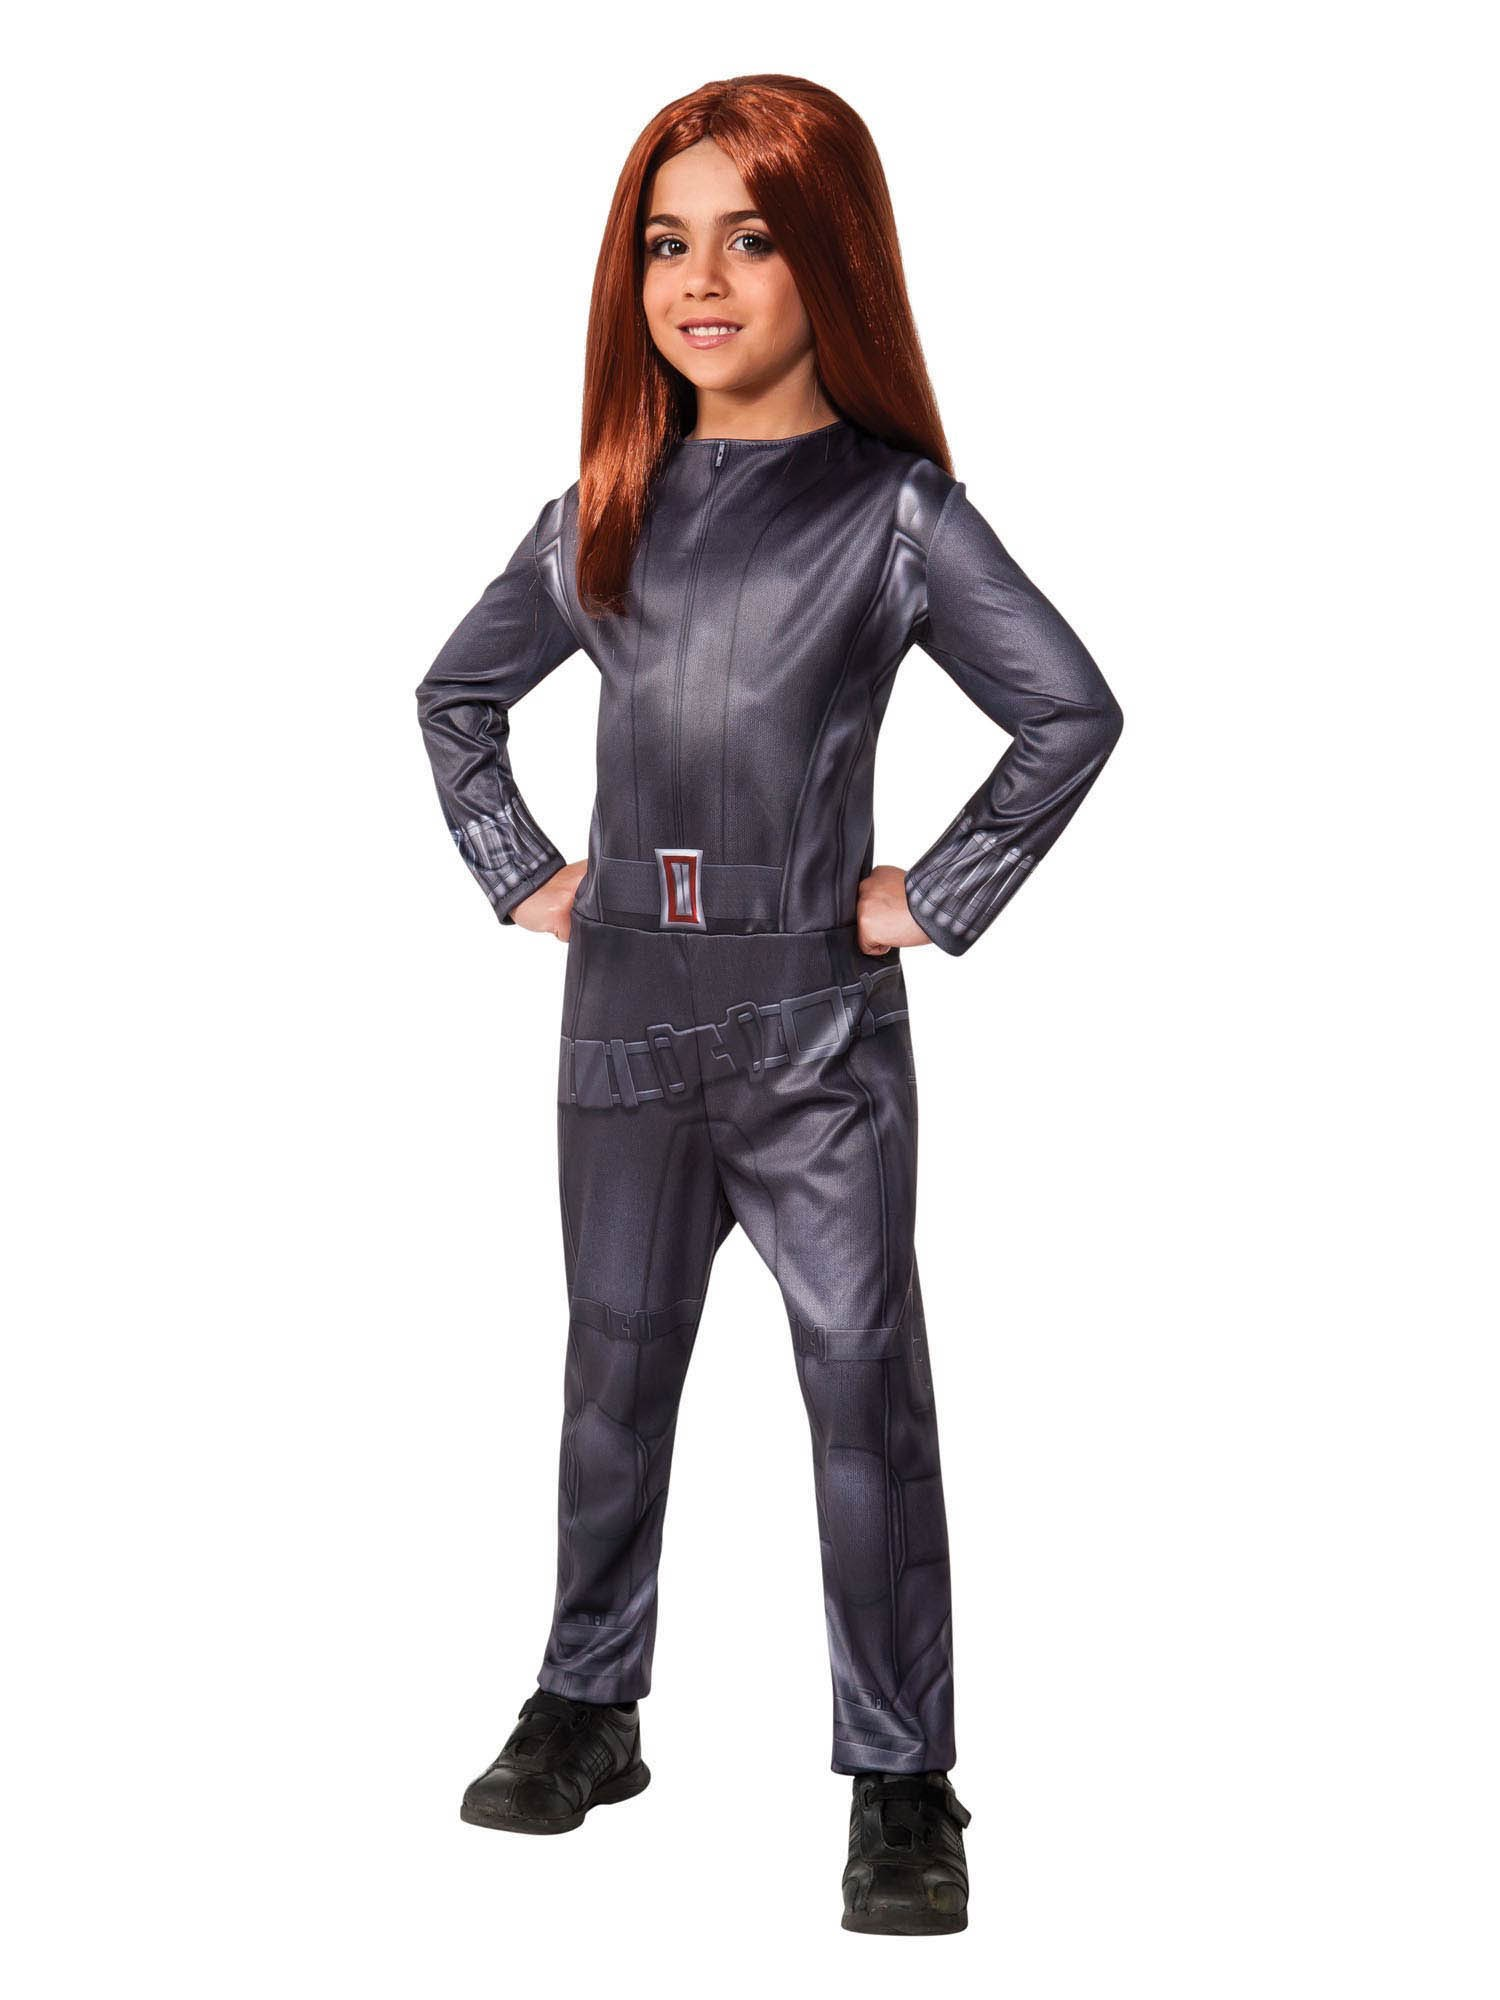 Captain America Winter Soldier - Black Widow Kids Costume Medium (8-10)